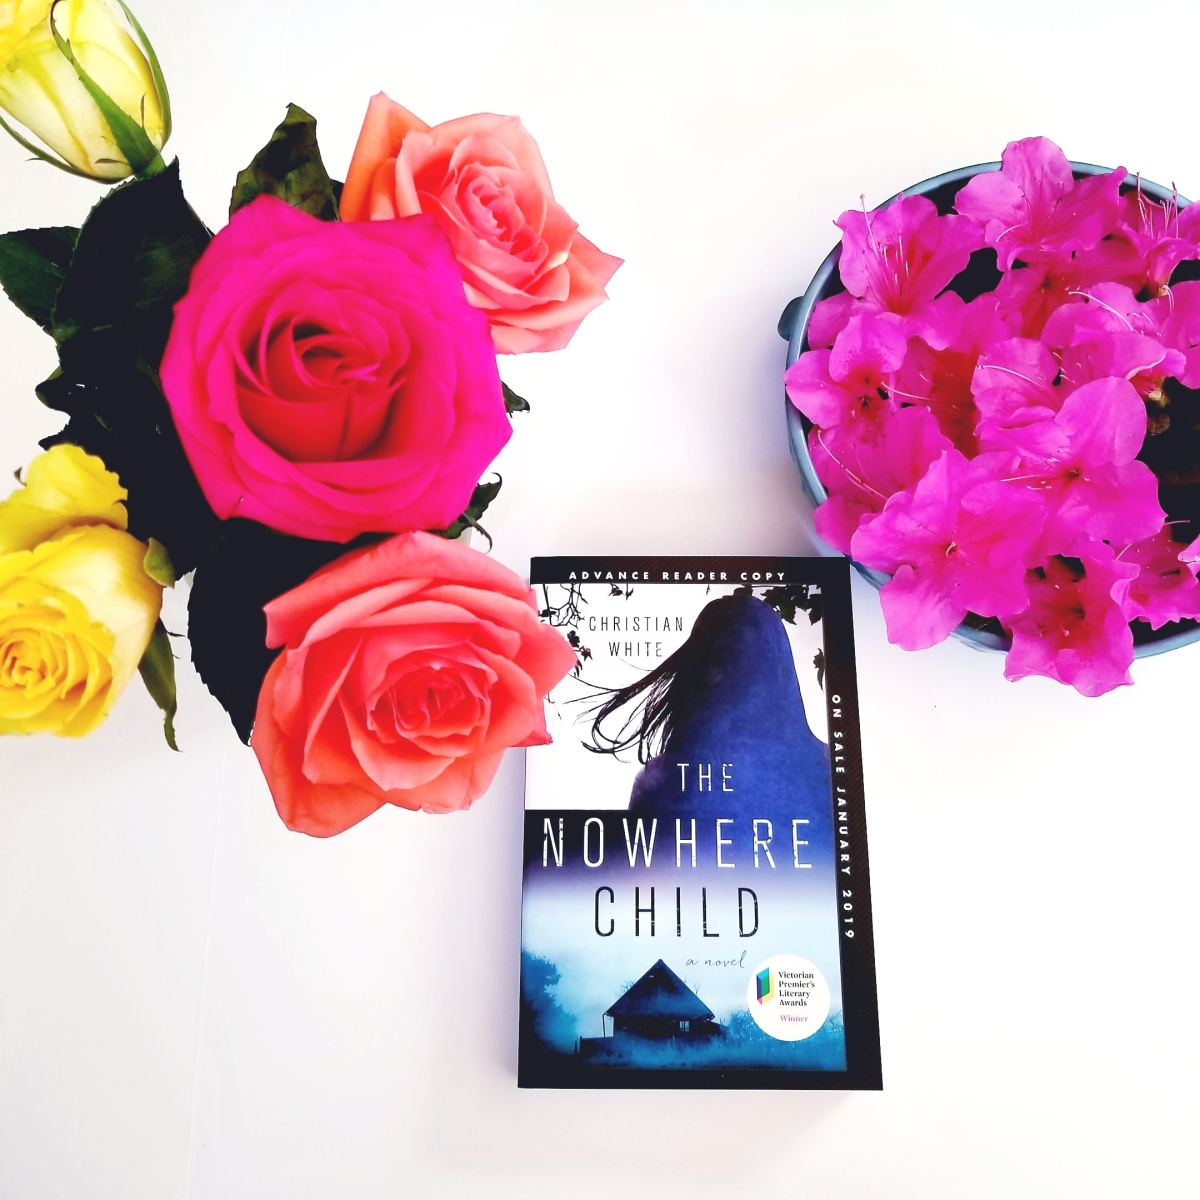 I can't wait for ... (Can't-Wait Wednesday/Waiting on Wednesday) #cantwaitwednesday #tarheelreader #thrnowherechild @cwhiteauthor @minotaurbooks @stmartinspress #thenowherechild